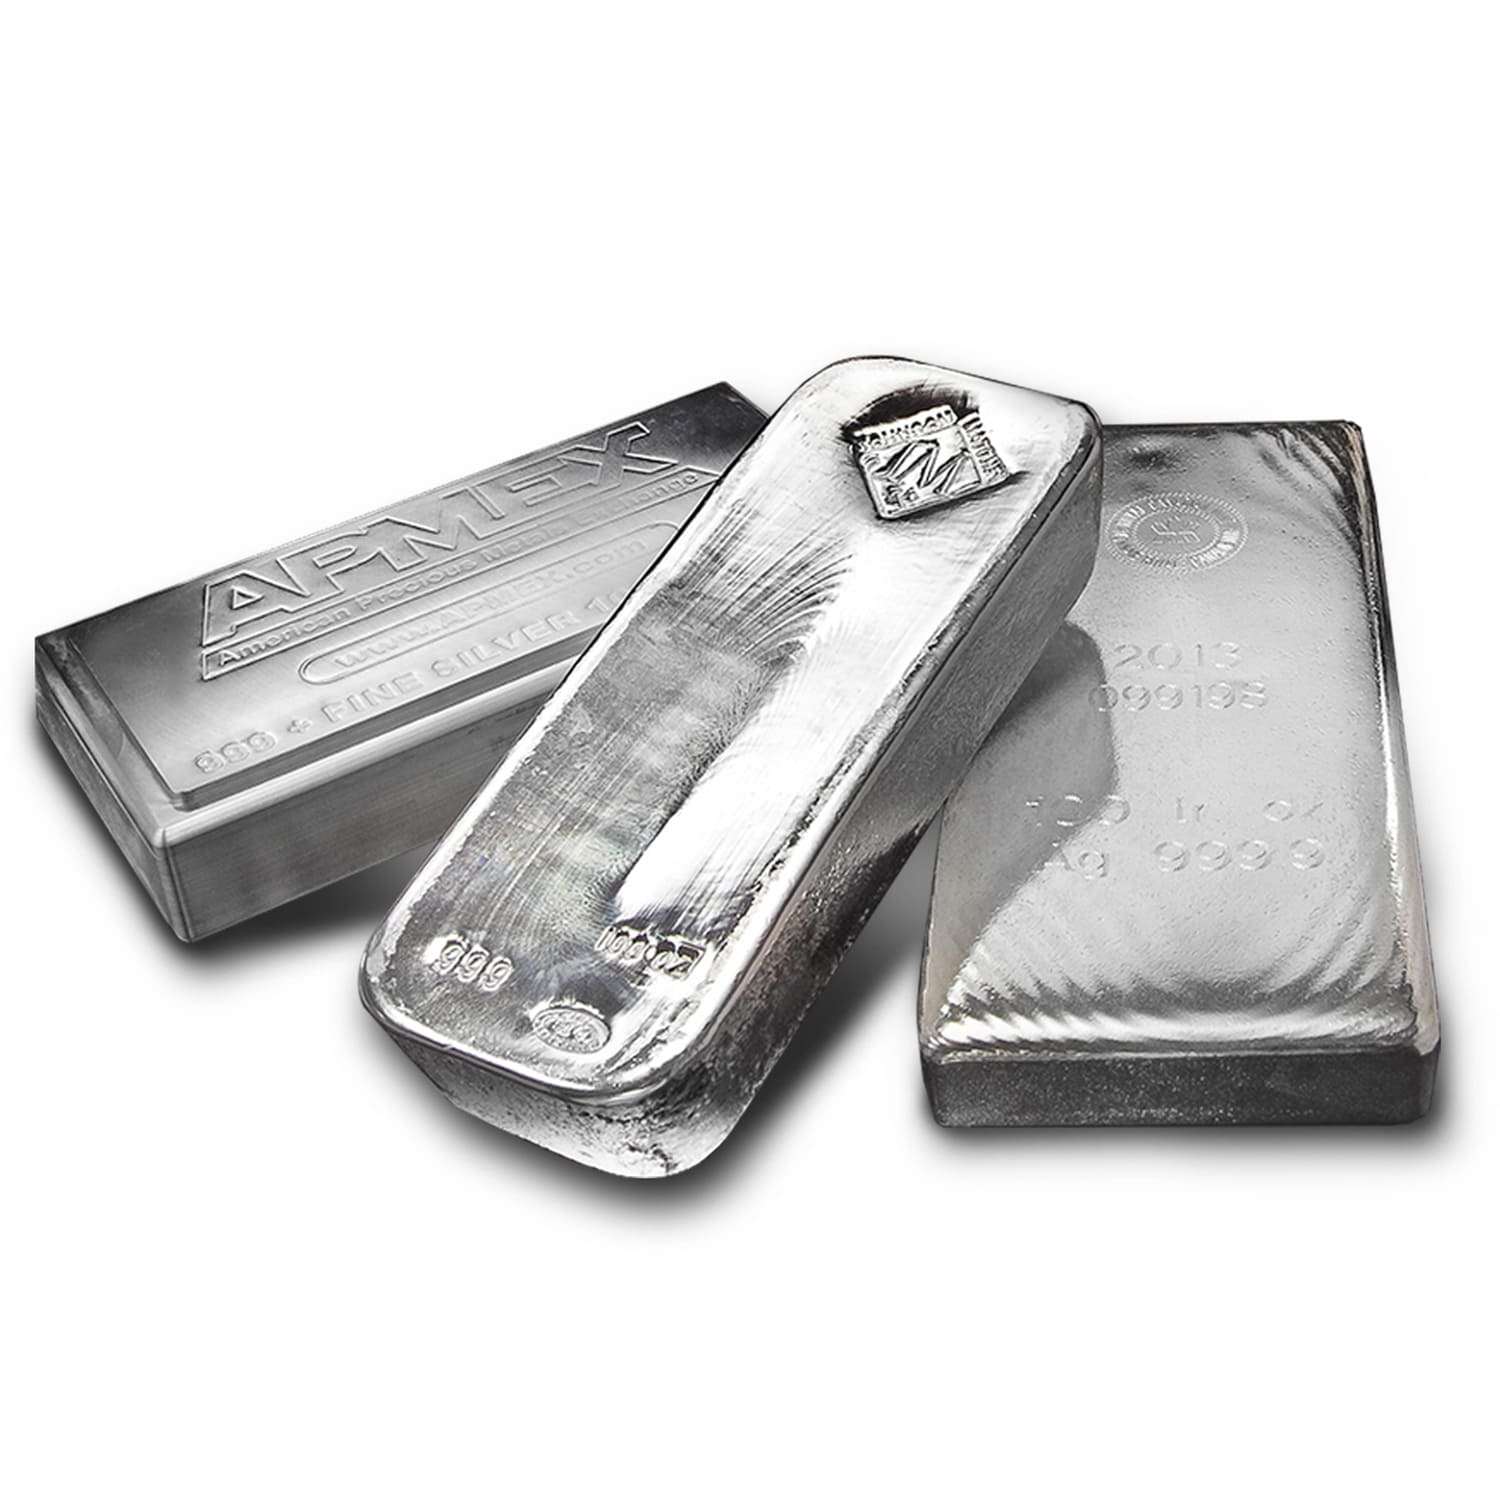 97.25 oz Silver Bars - Secondary Market